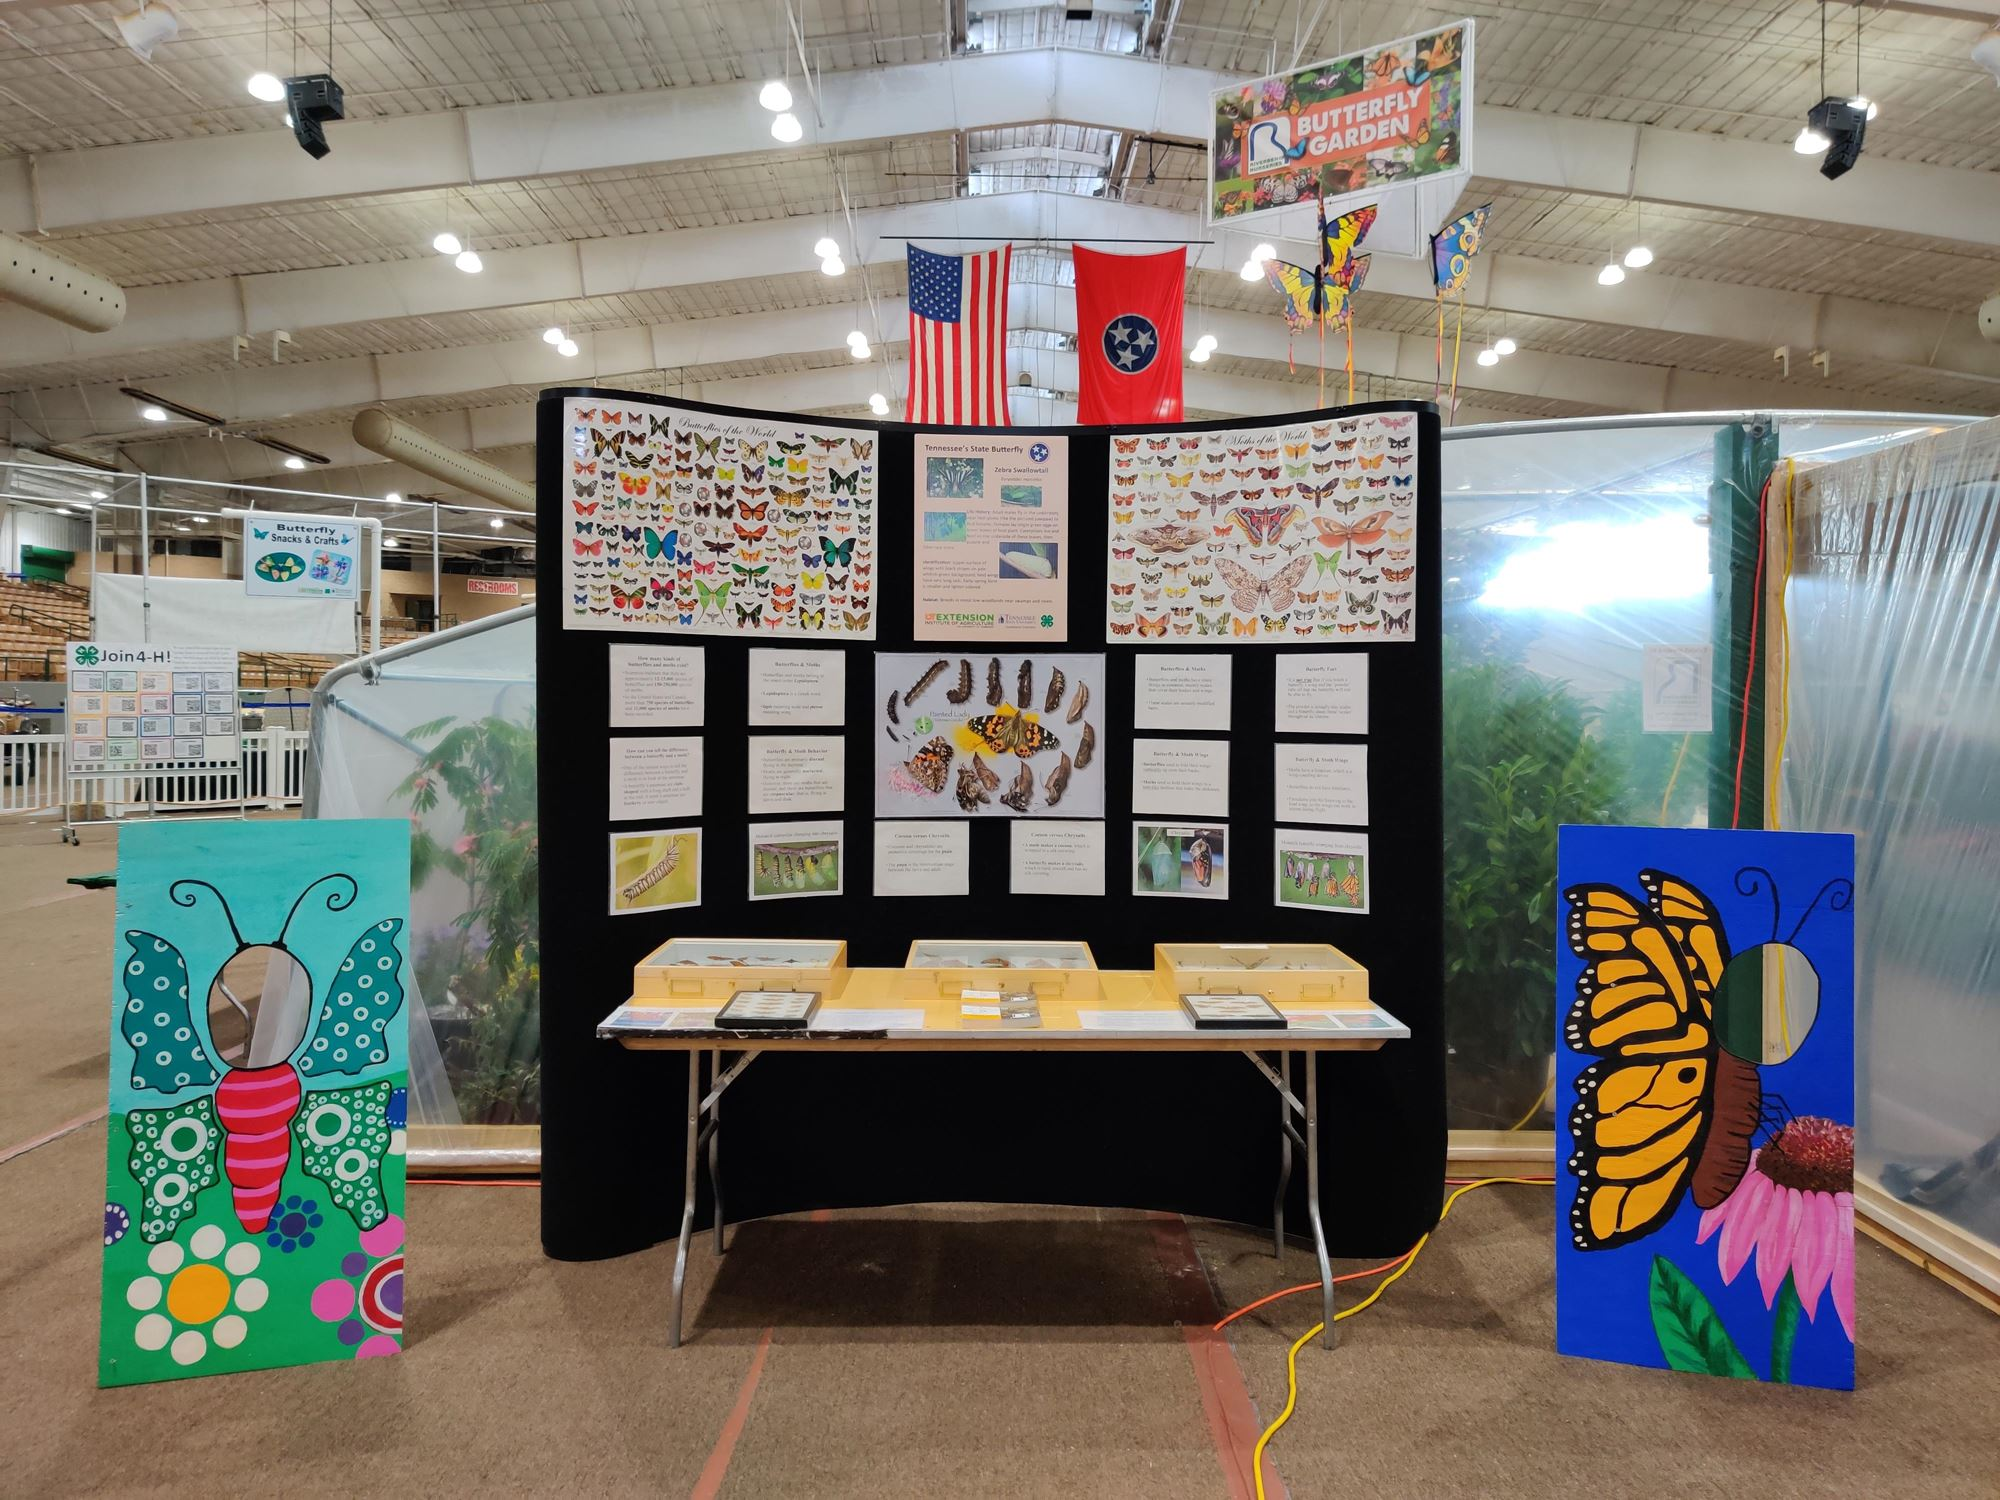 Educational display about butterflies